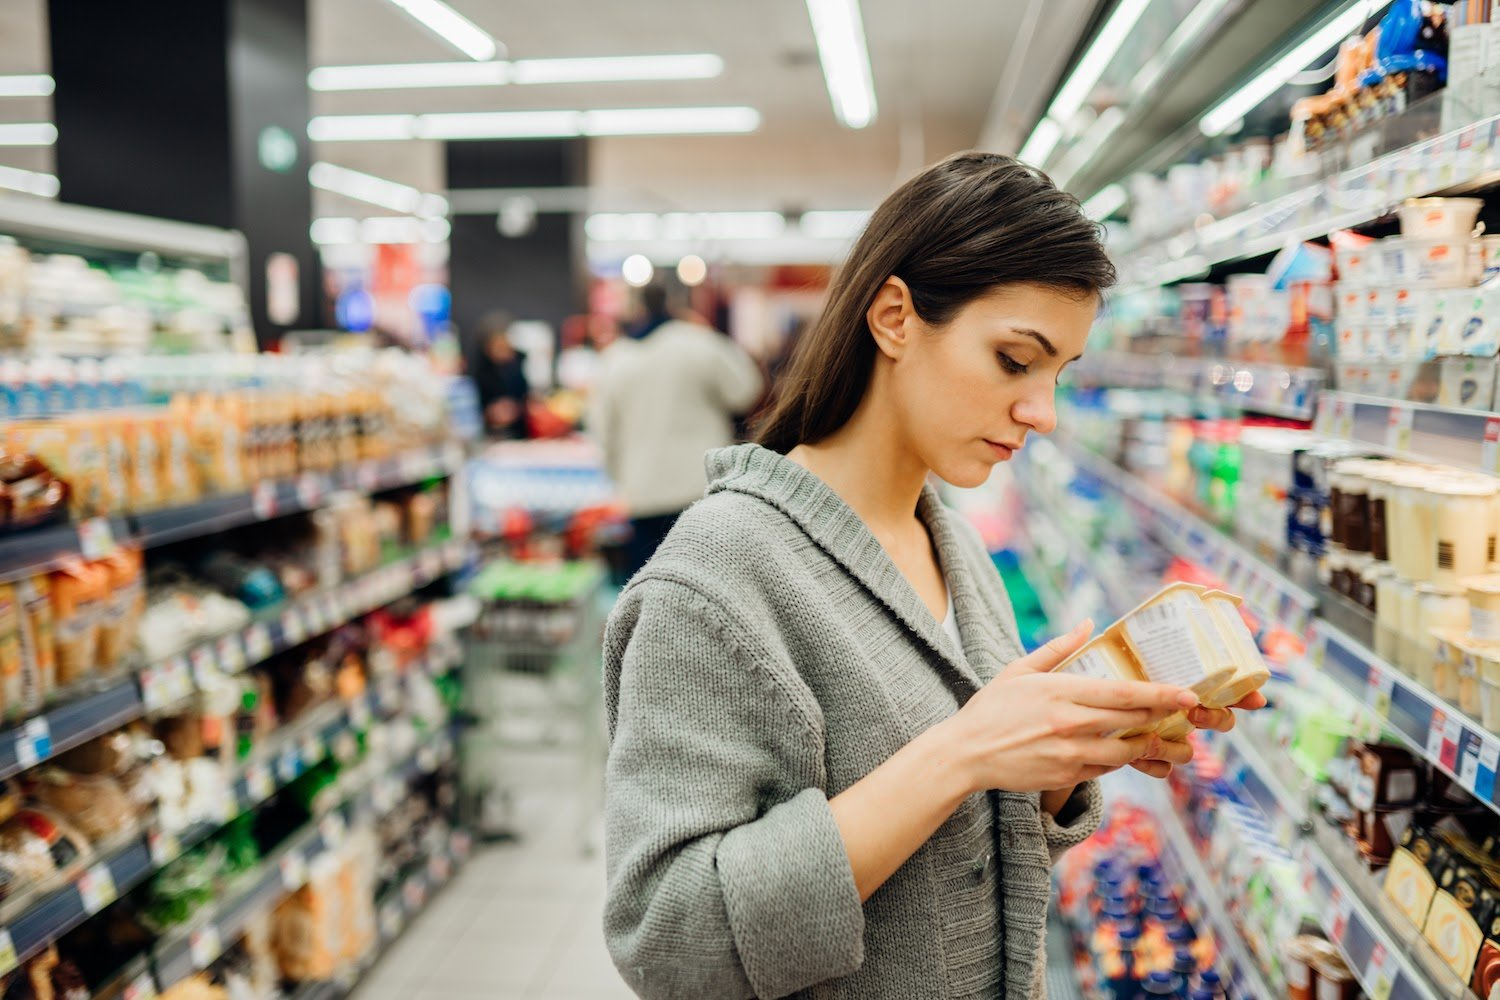 Low FODMAP diet: A woman reads the ingredients on a package of yogurt